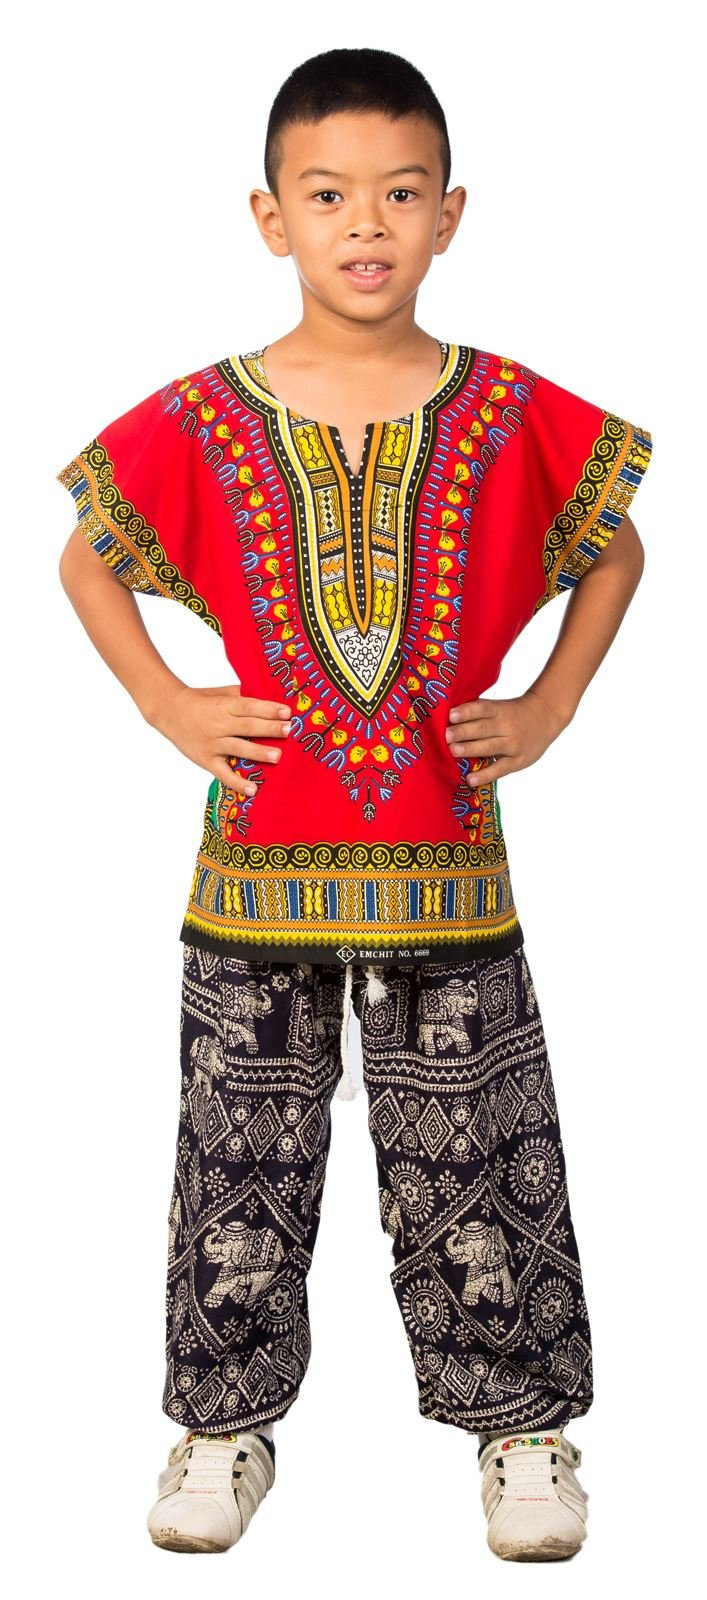 Lofbaz Unisex Child Traditional African Printed Dashiki One Size Red